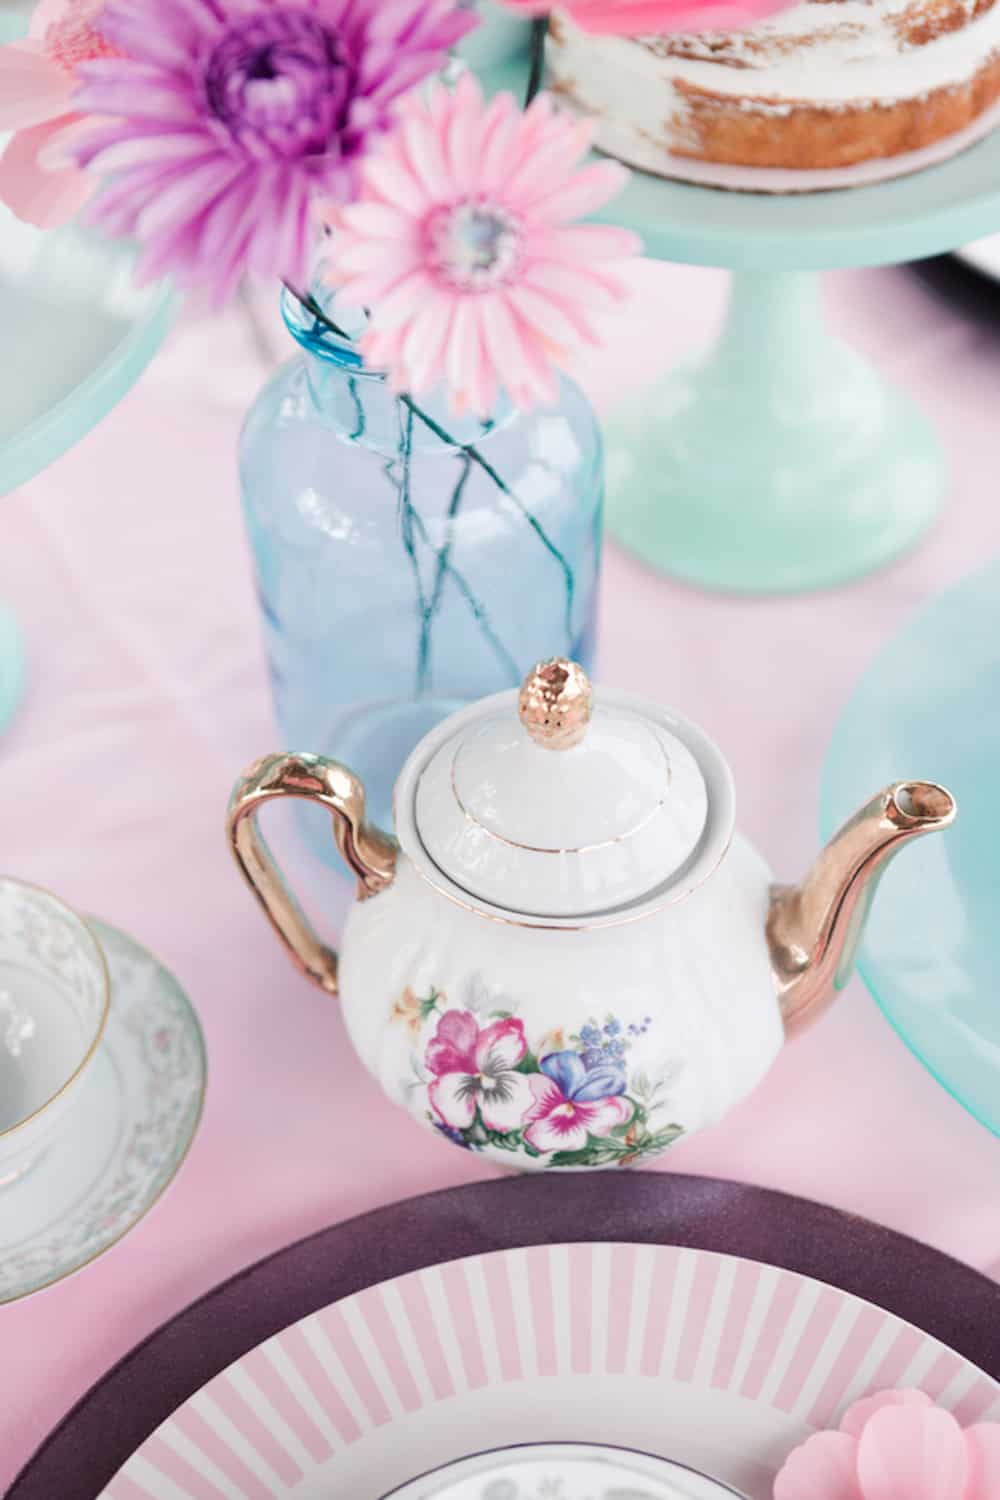 9BWright_CWrightPhotography_MothersDayHighTeaStyledShootbyCWrightPhotography23_low